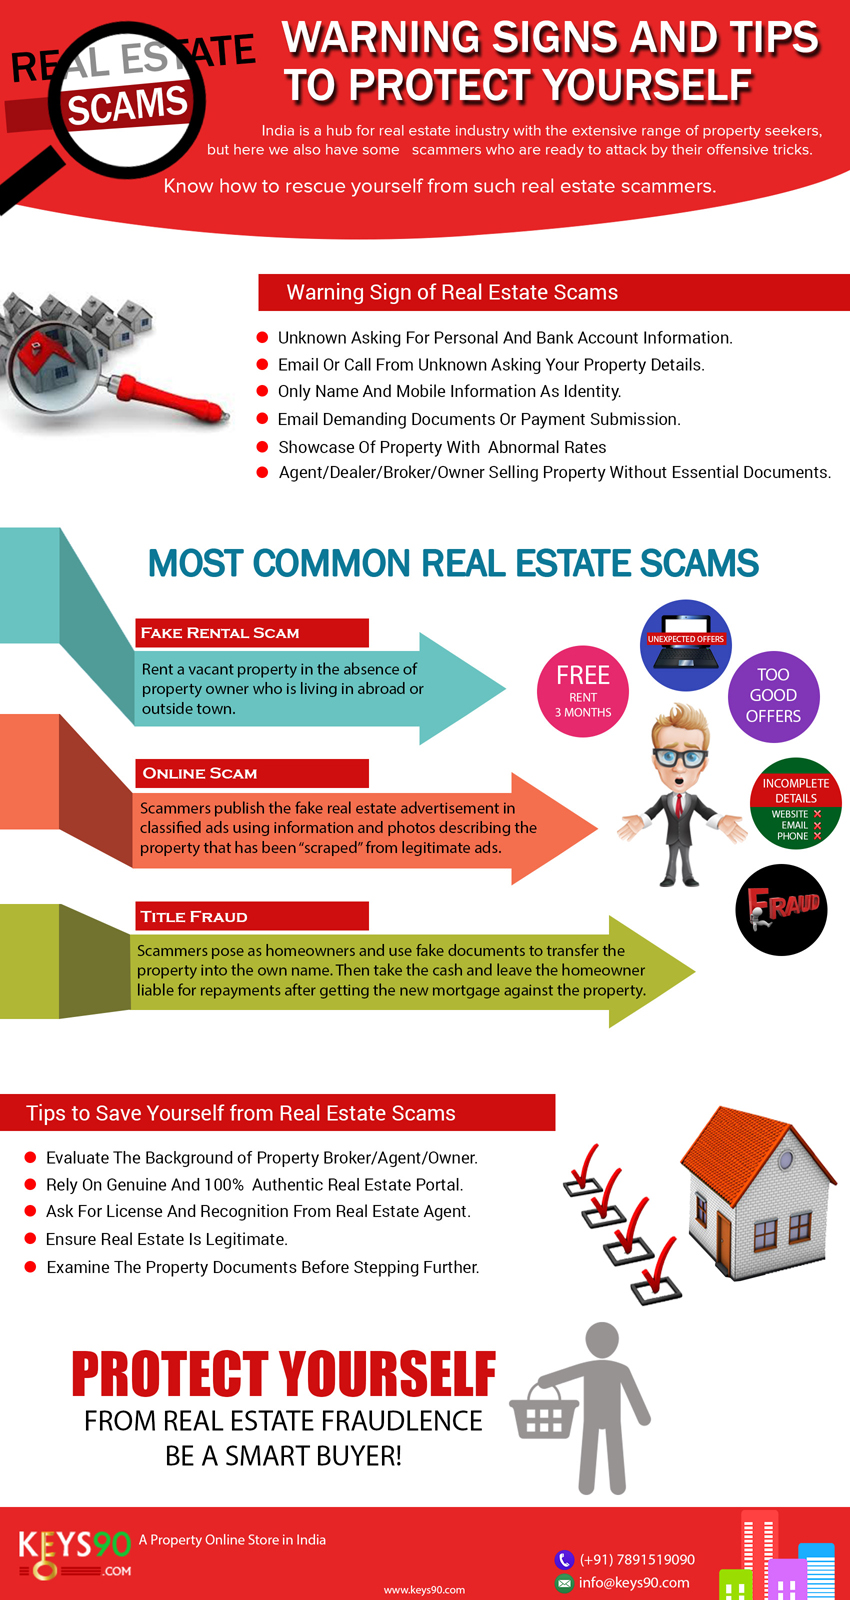 Real-Estate-Scams-infographic-plaza